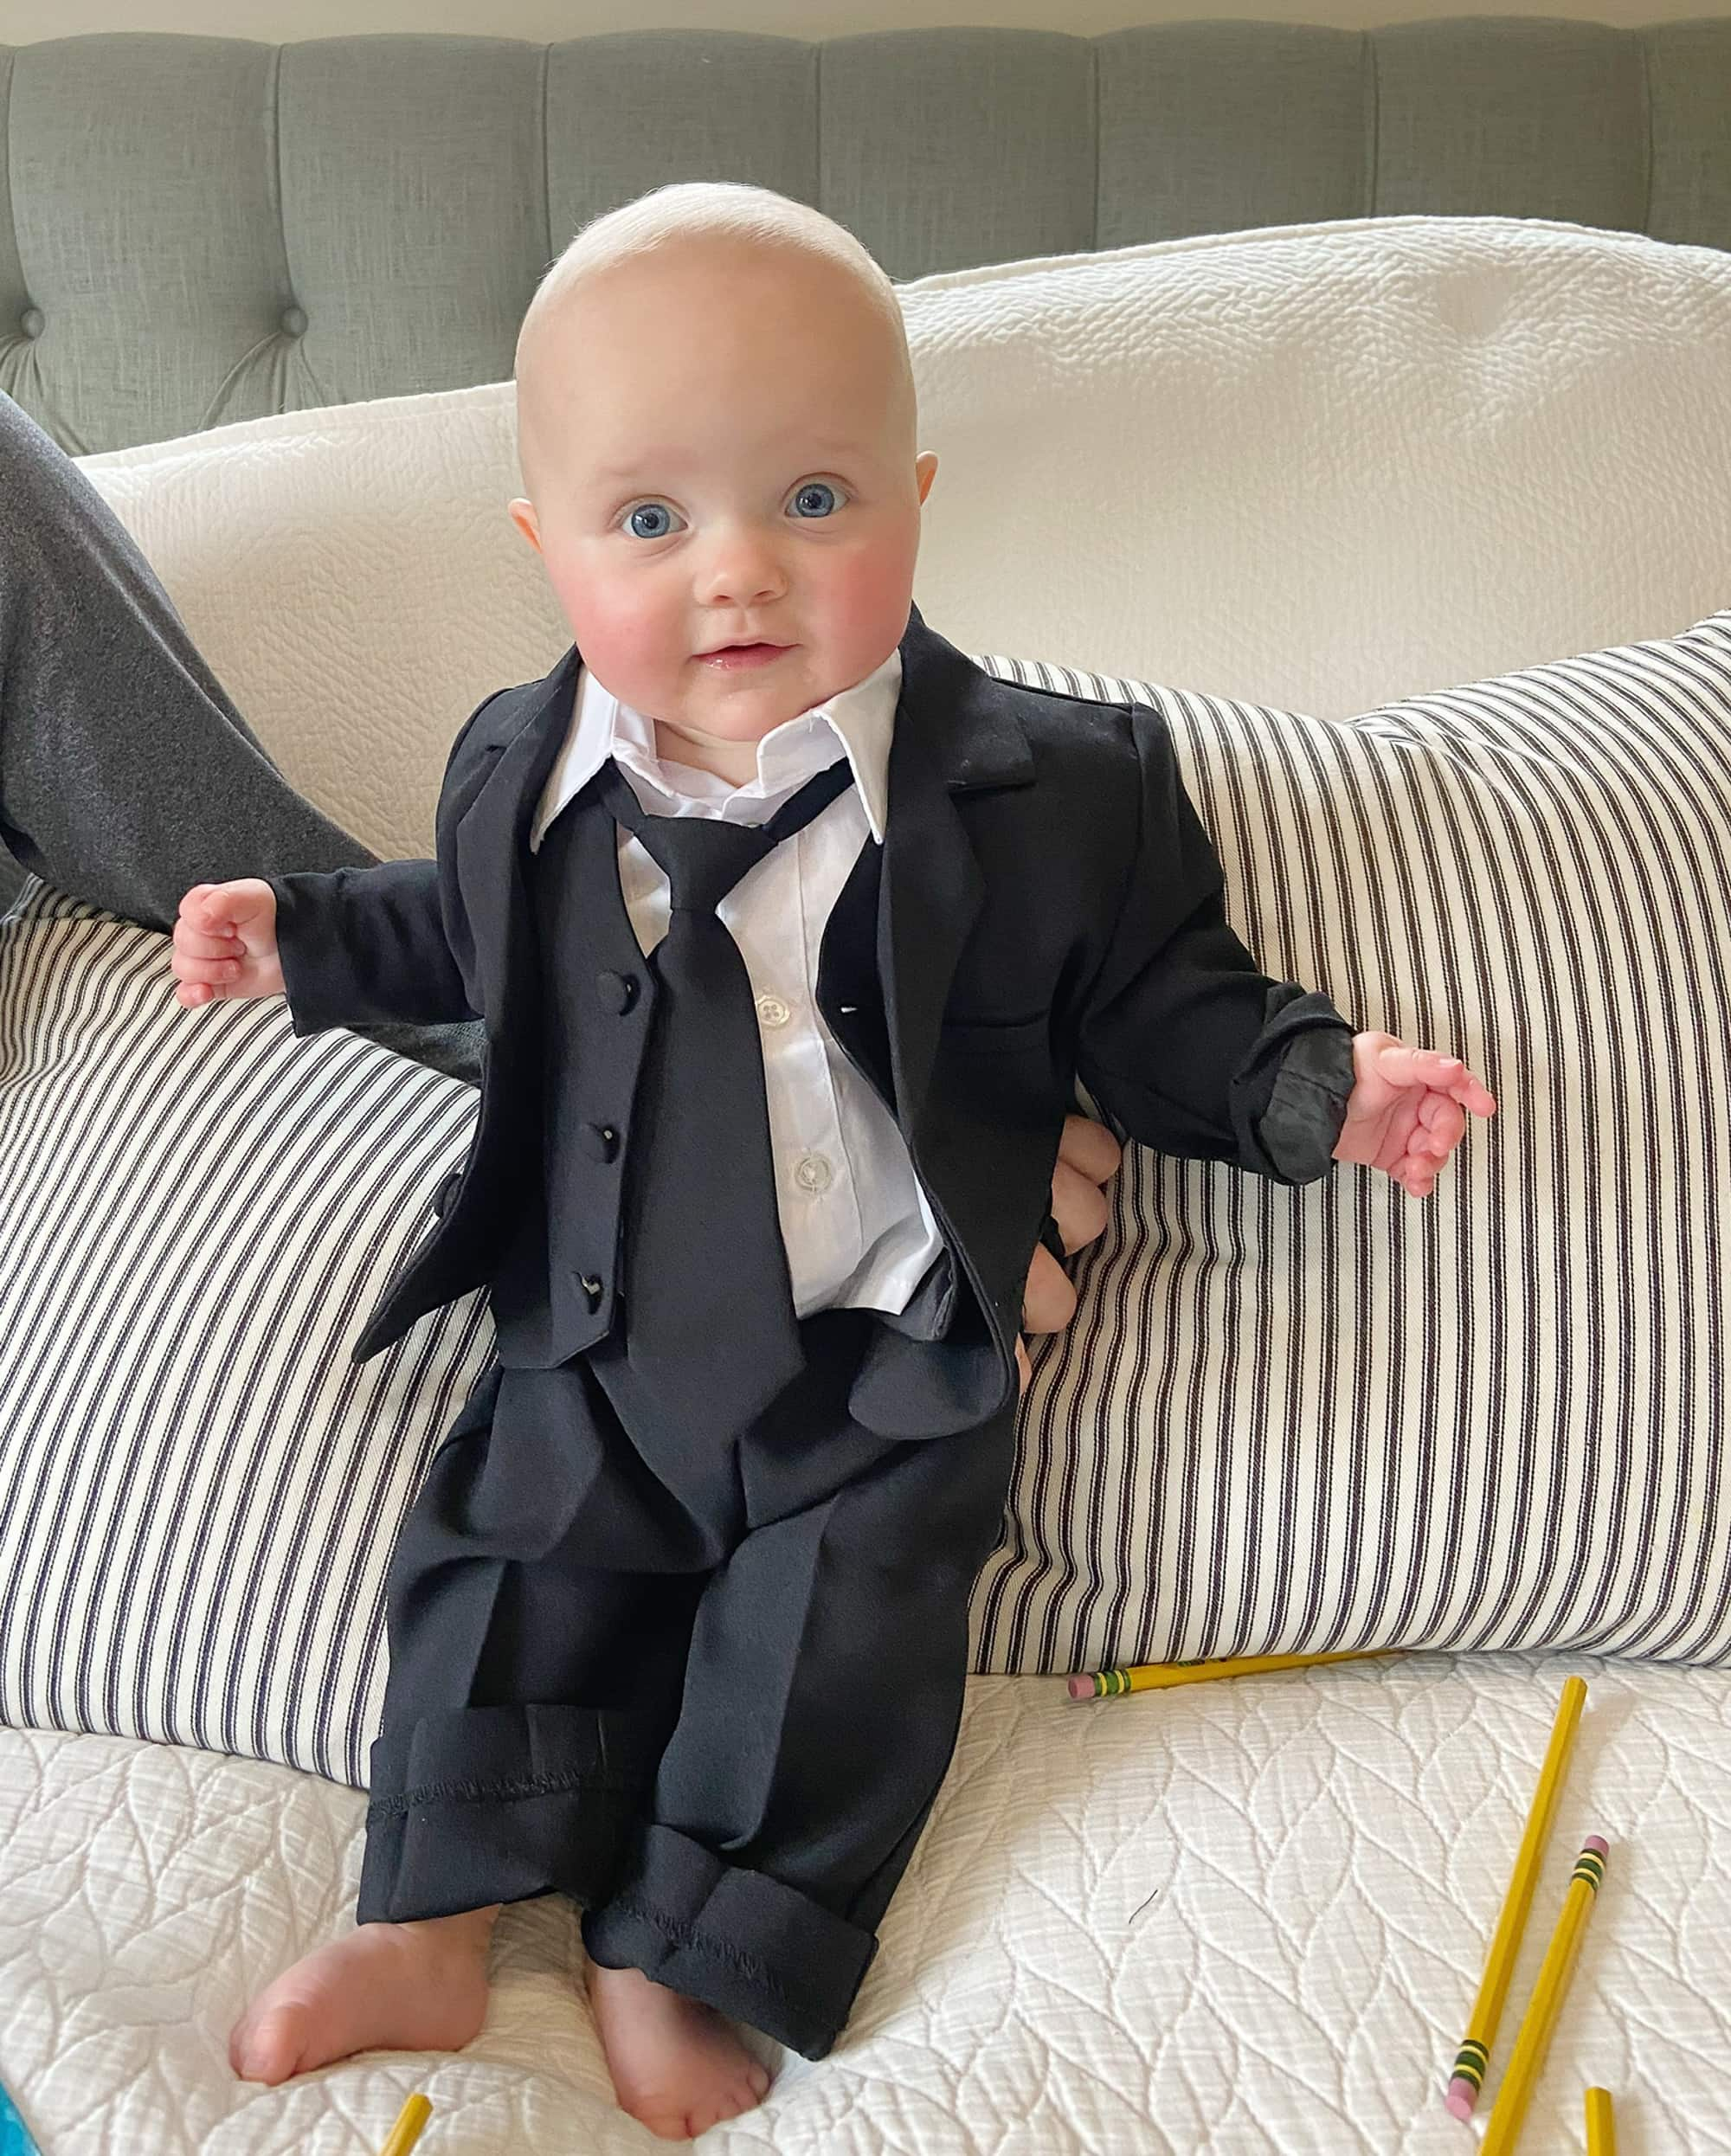 Rory as boss baby for halloween